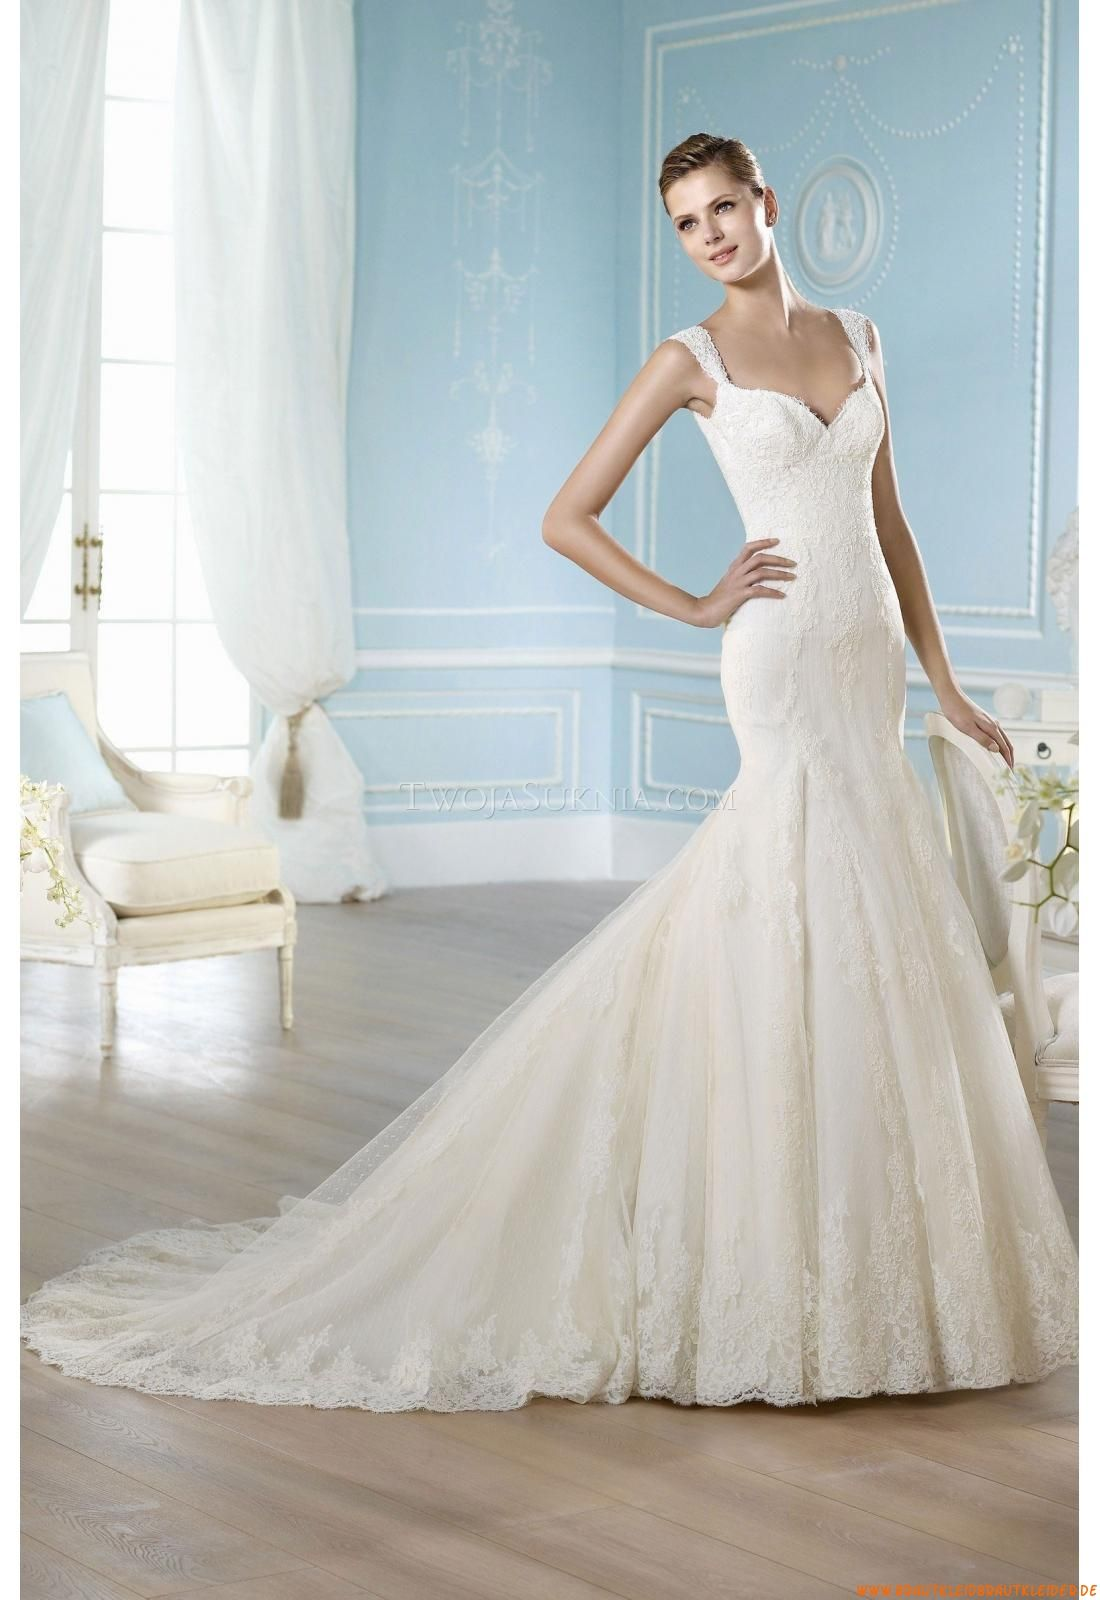 Organza Designer Brautkleider | Wedding | Pinterest | Wedding dress ...